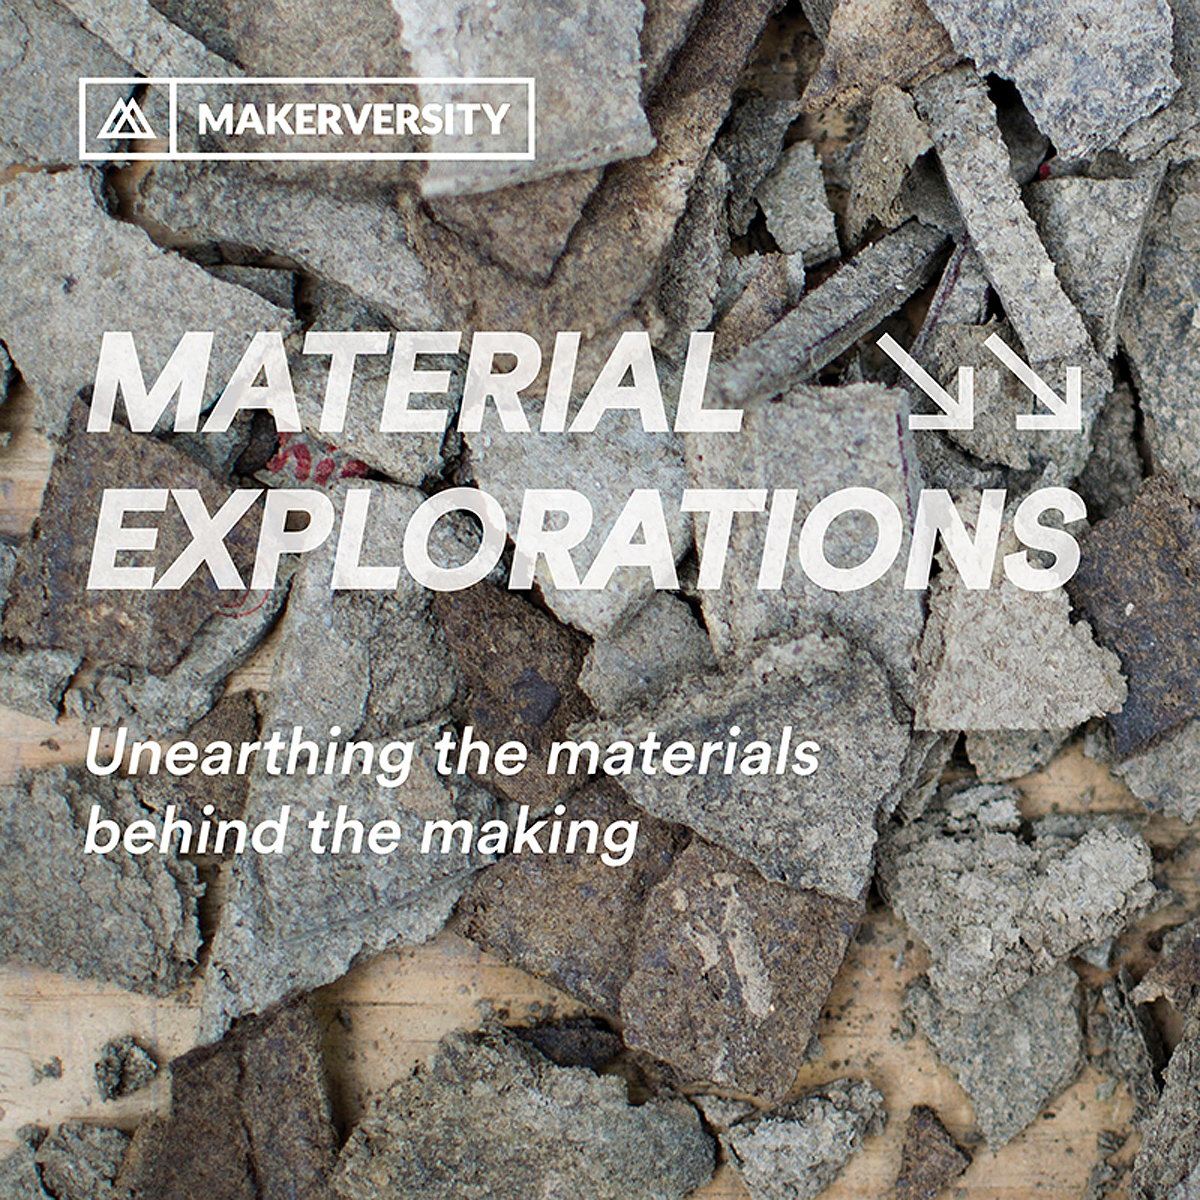 Material Explorations - Waste Streams at Makerversity, Somerset House